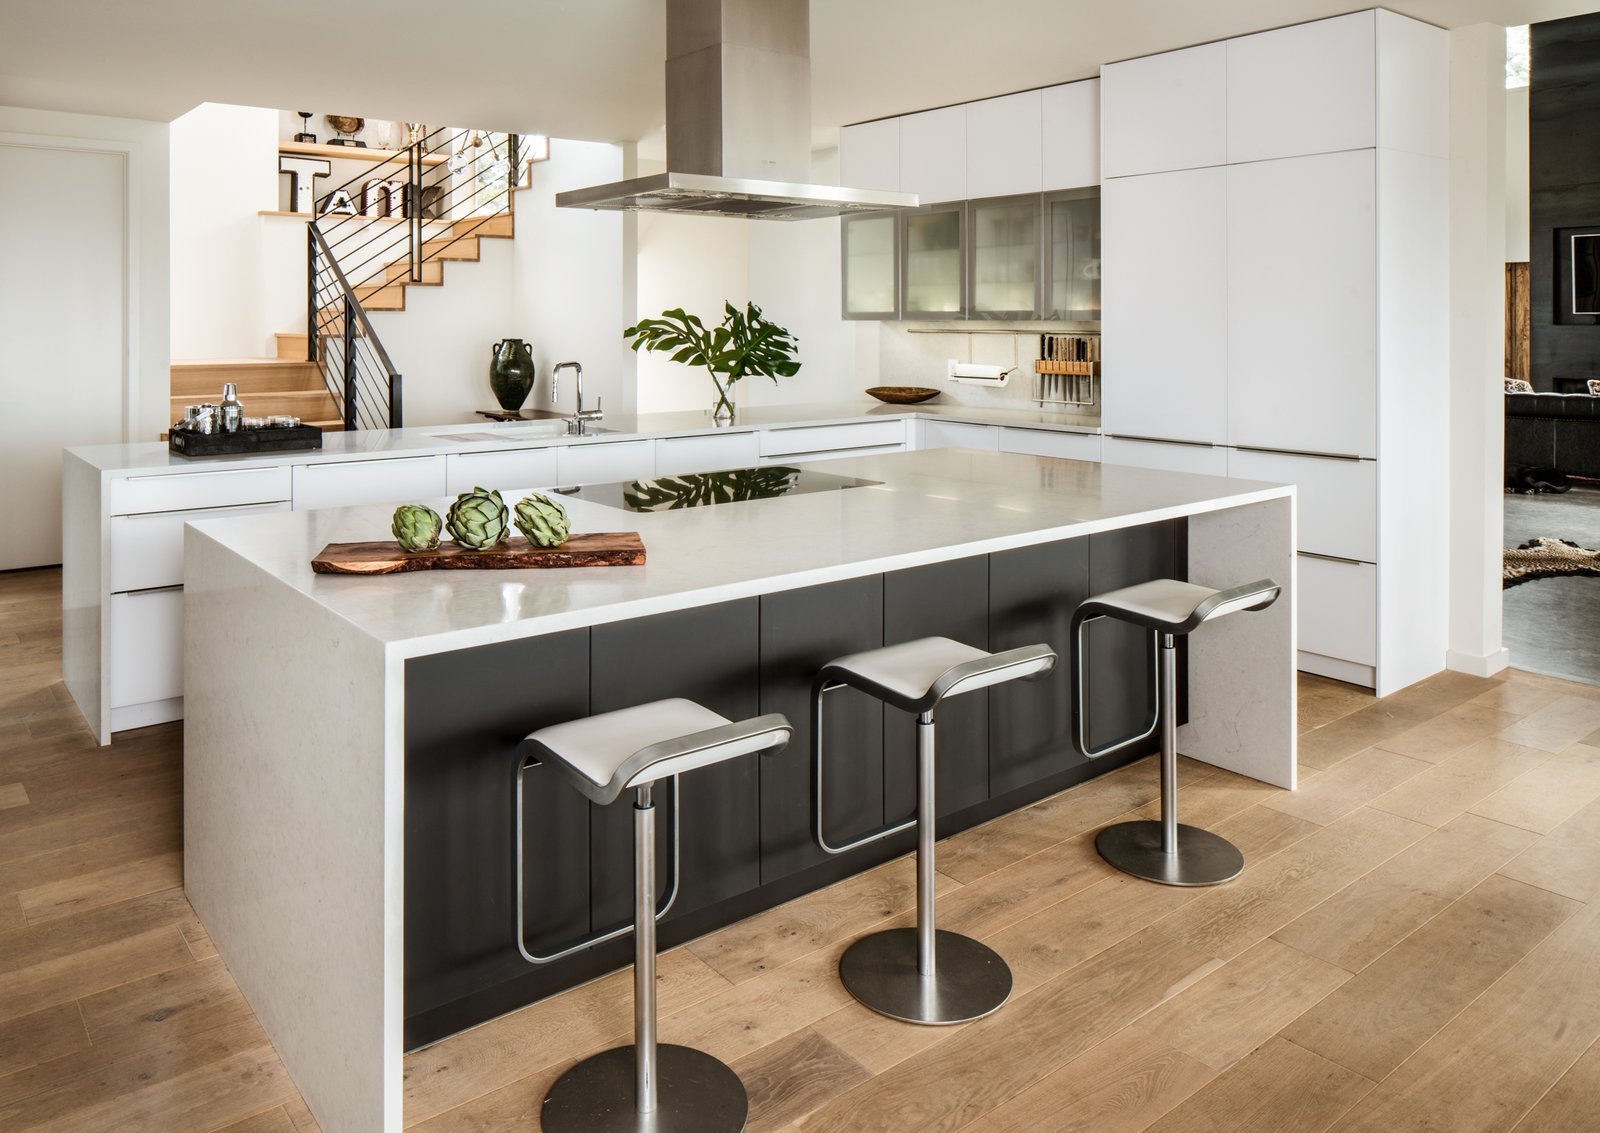 Modern home with Kitchen, Engineered Quartz Counter, White Cabinet, Light Hardwood Floor, Range Hood, and Cooktops. Kitchen Photo 10 of River Garden Trail Residence